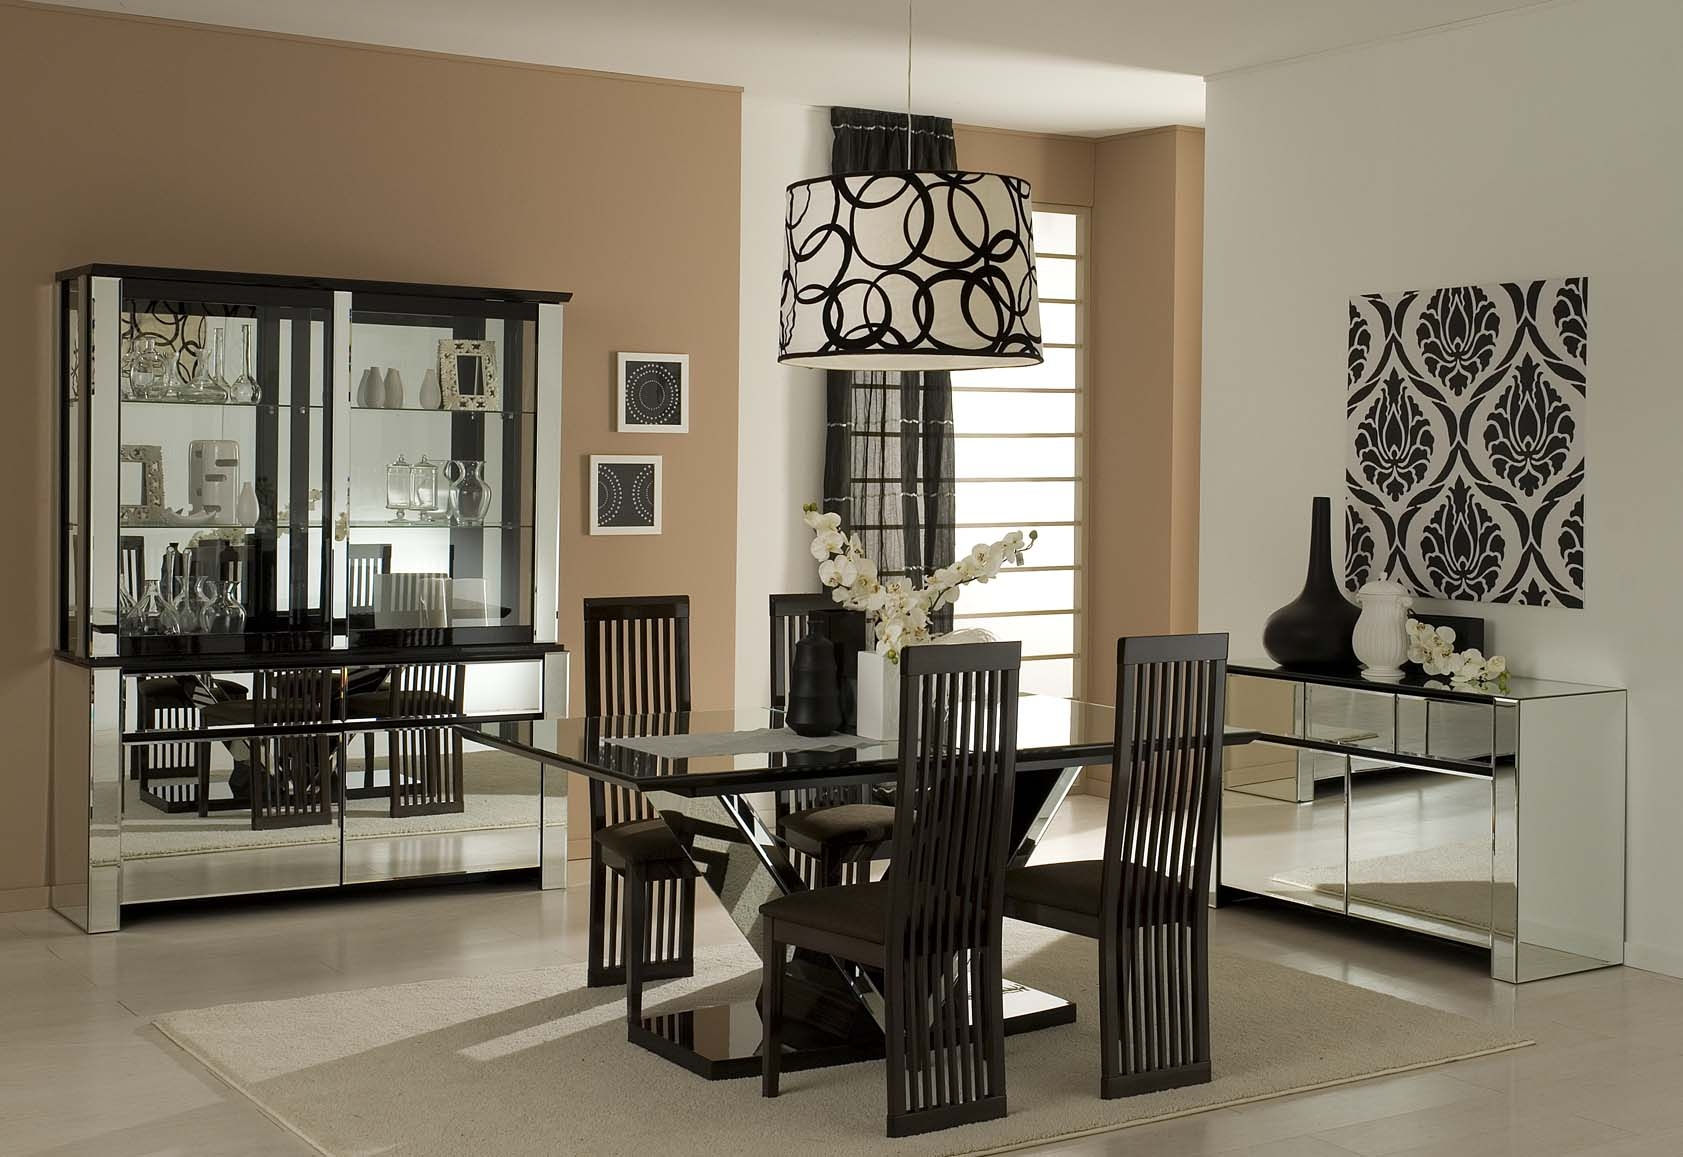 Add Artistic Kitchen Wall Decor for Dining Room with Black Table and Cozy Chairs under Wide Ceiling Lamp